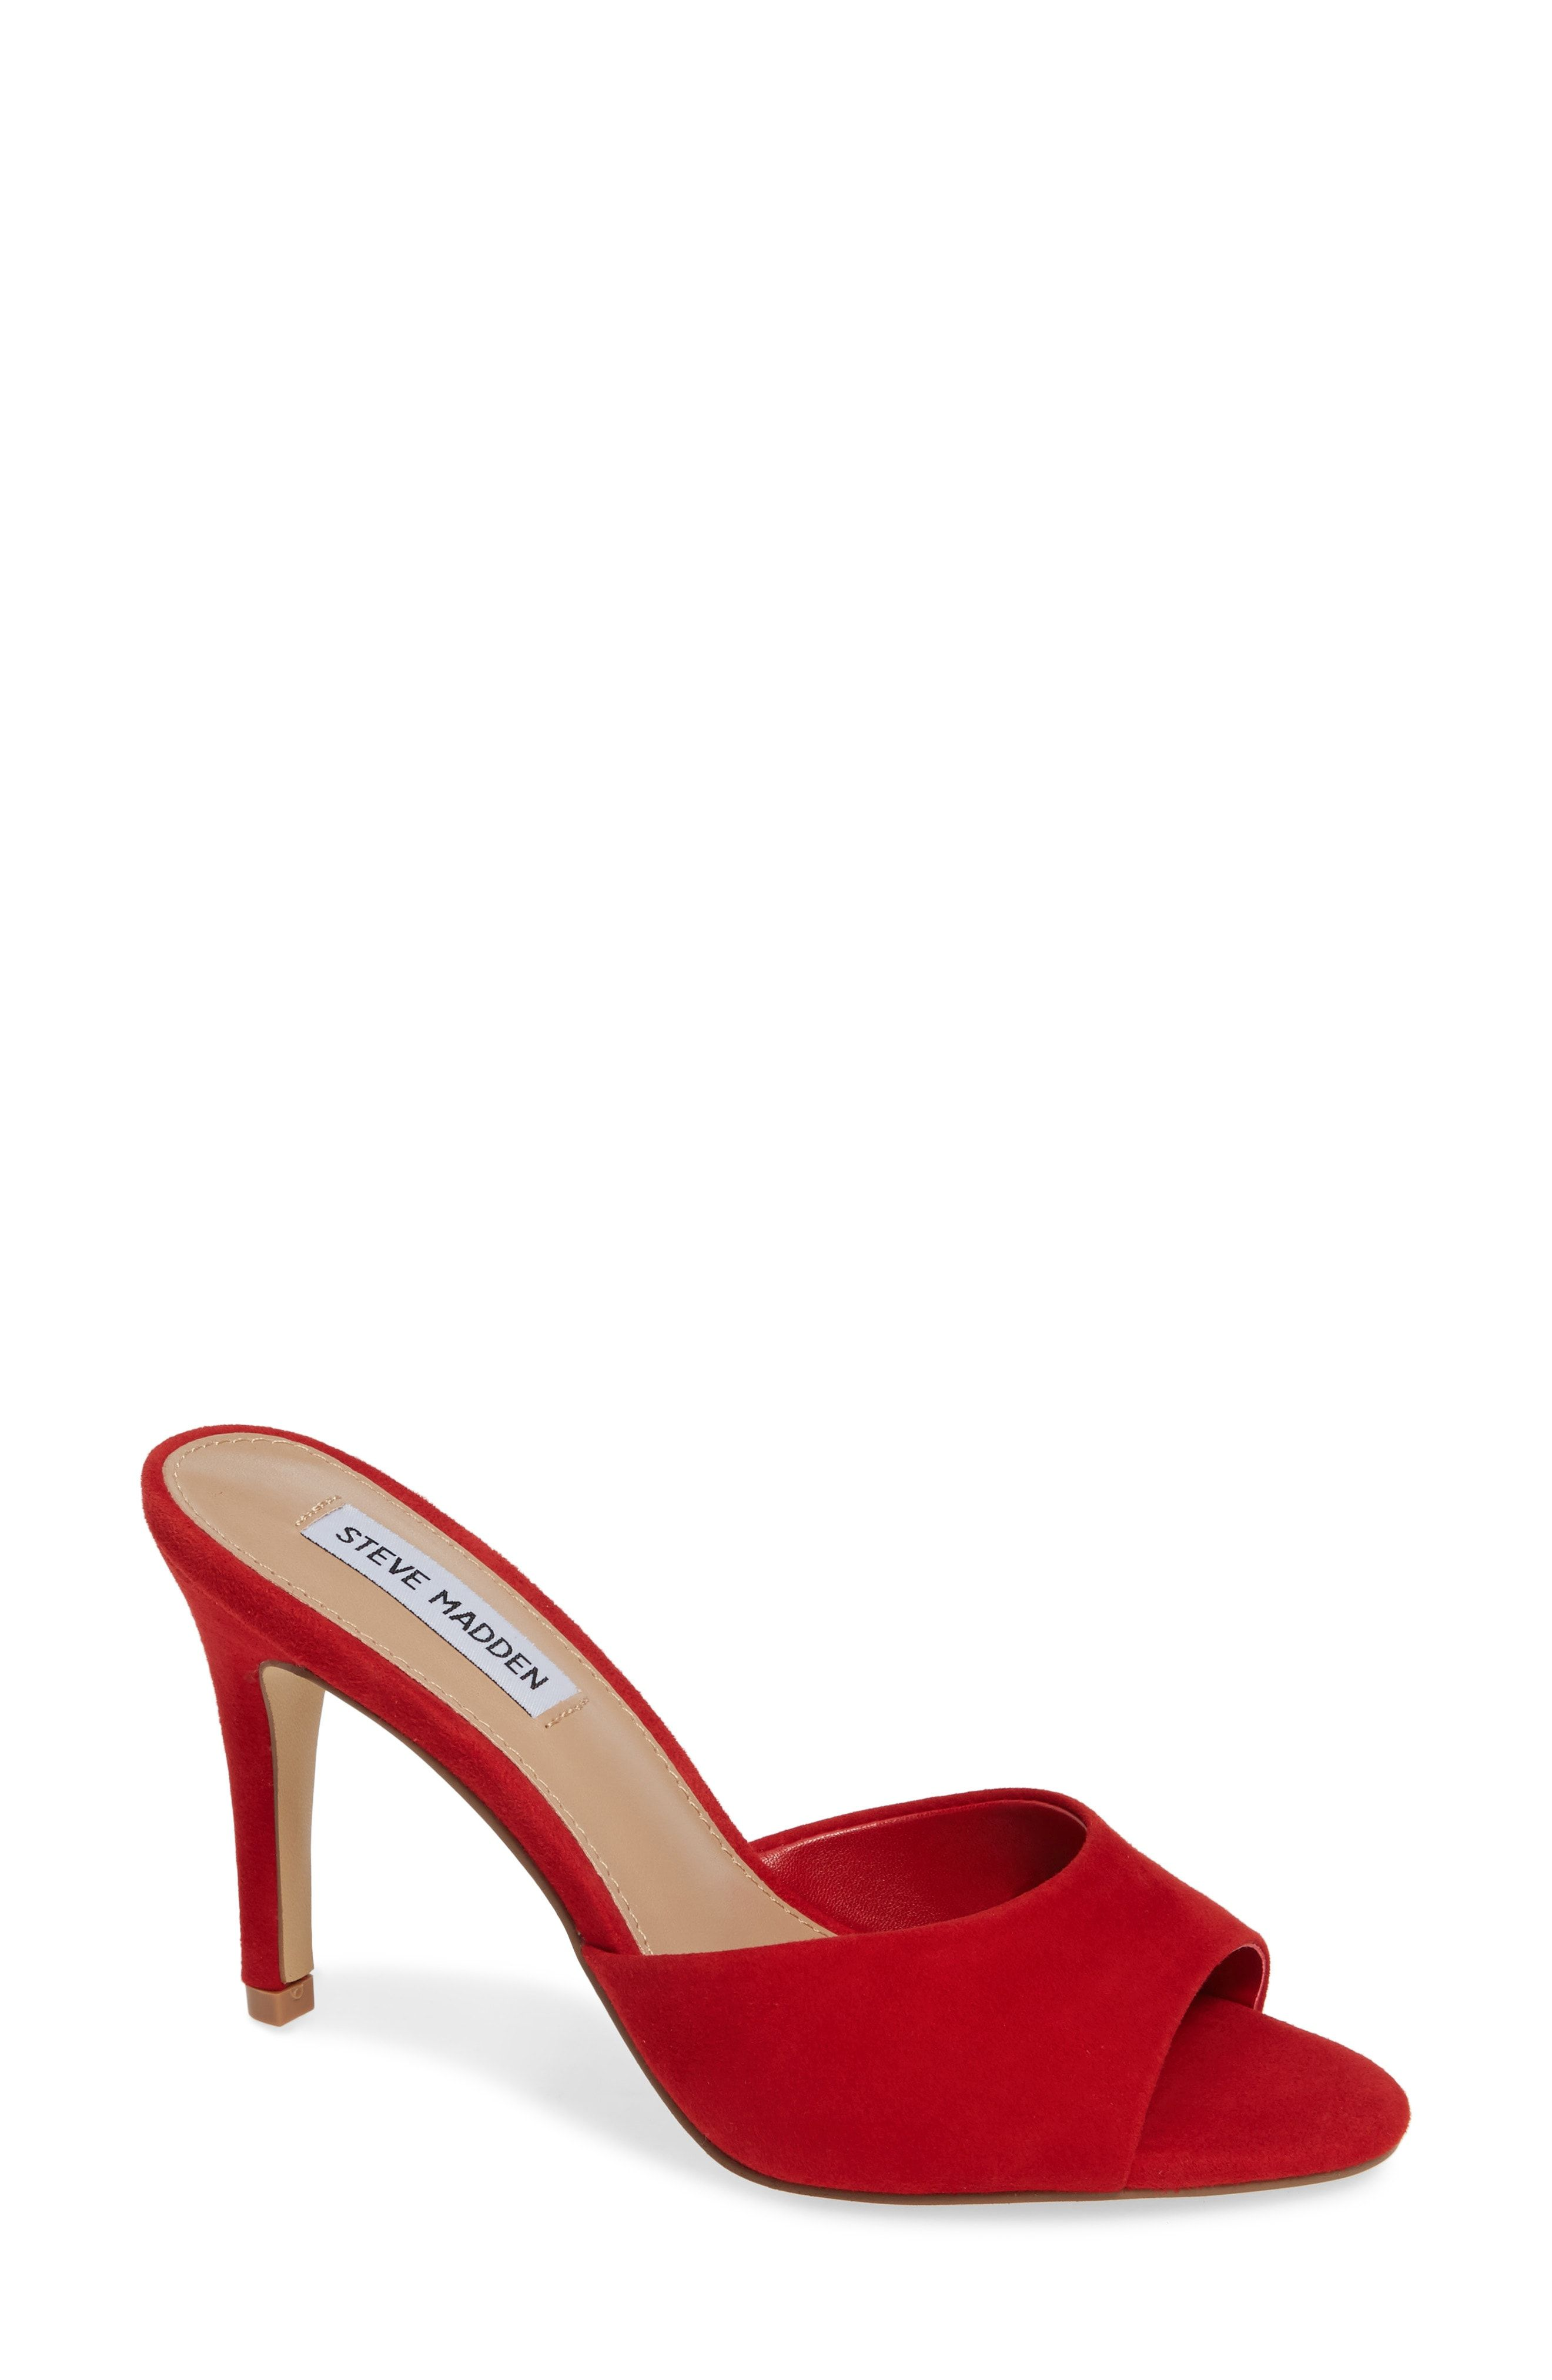 e86b52c755f Pretty red Steve Madden heels for the holidays! | Holiday Style ...